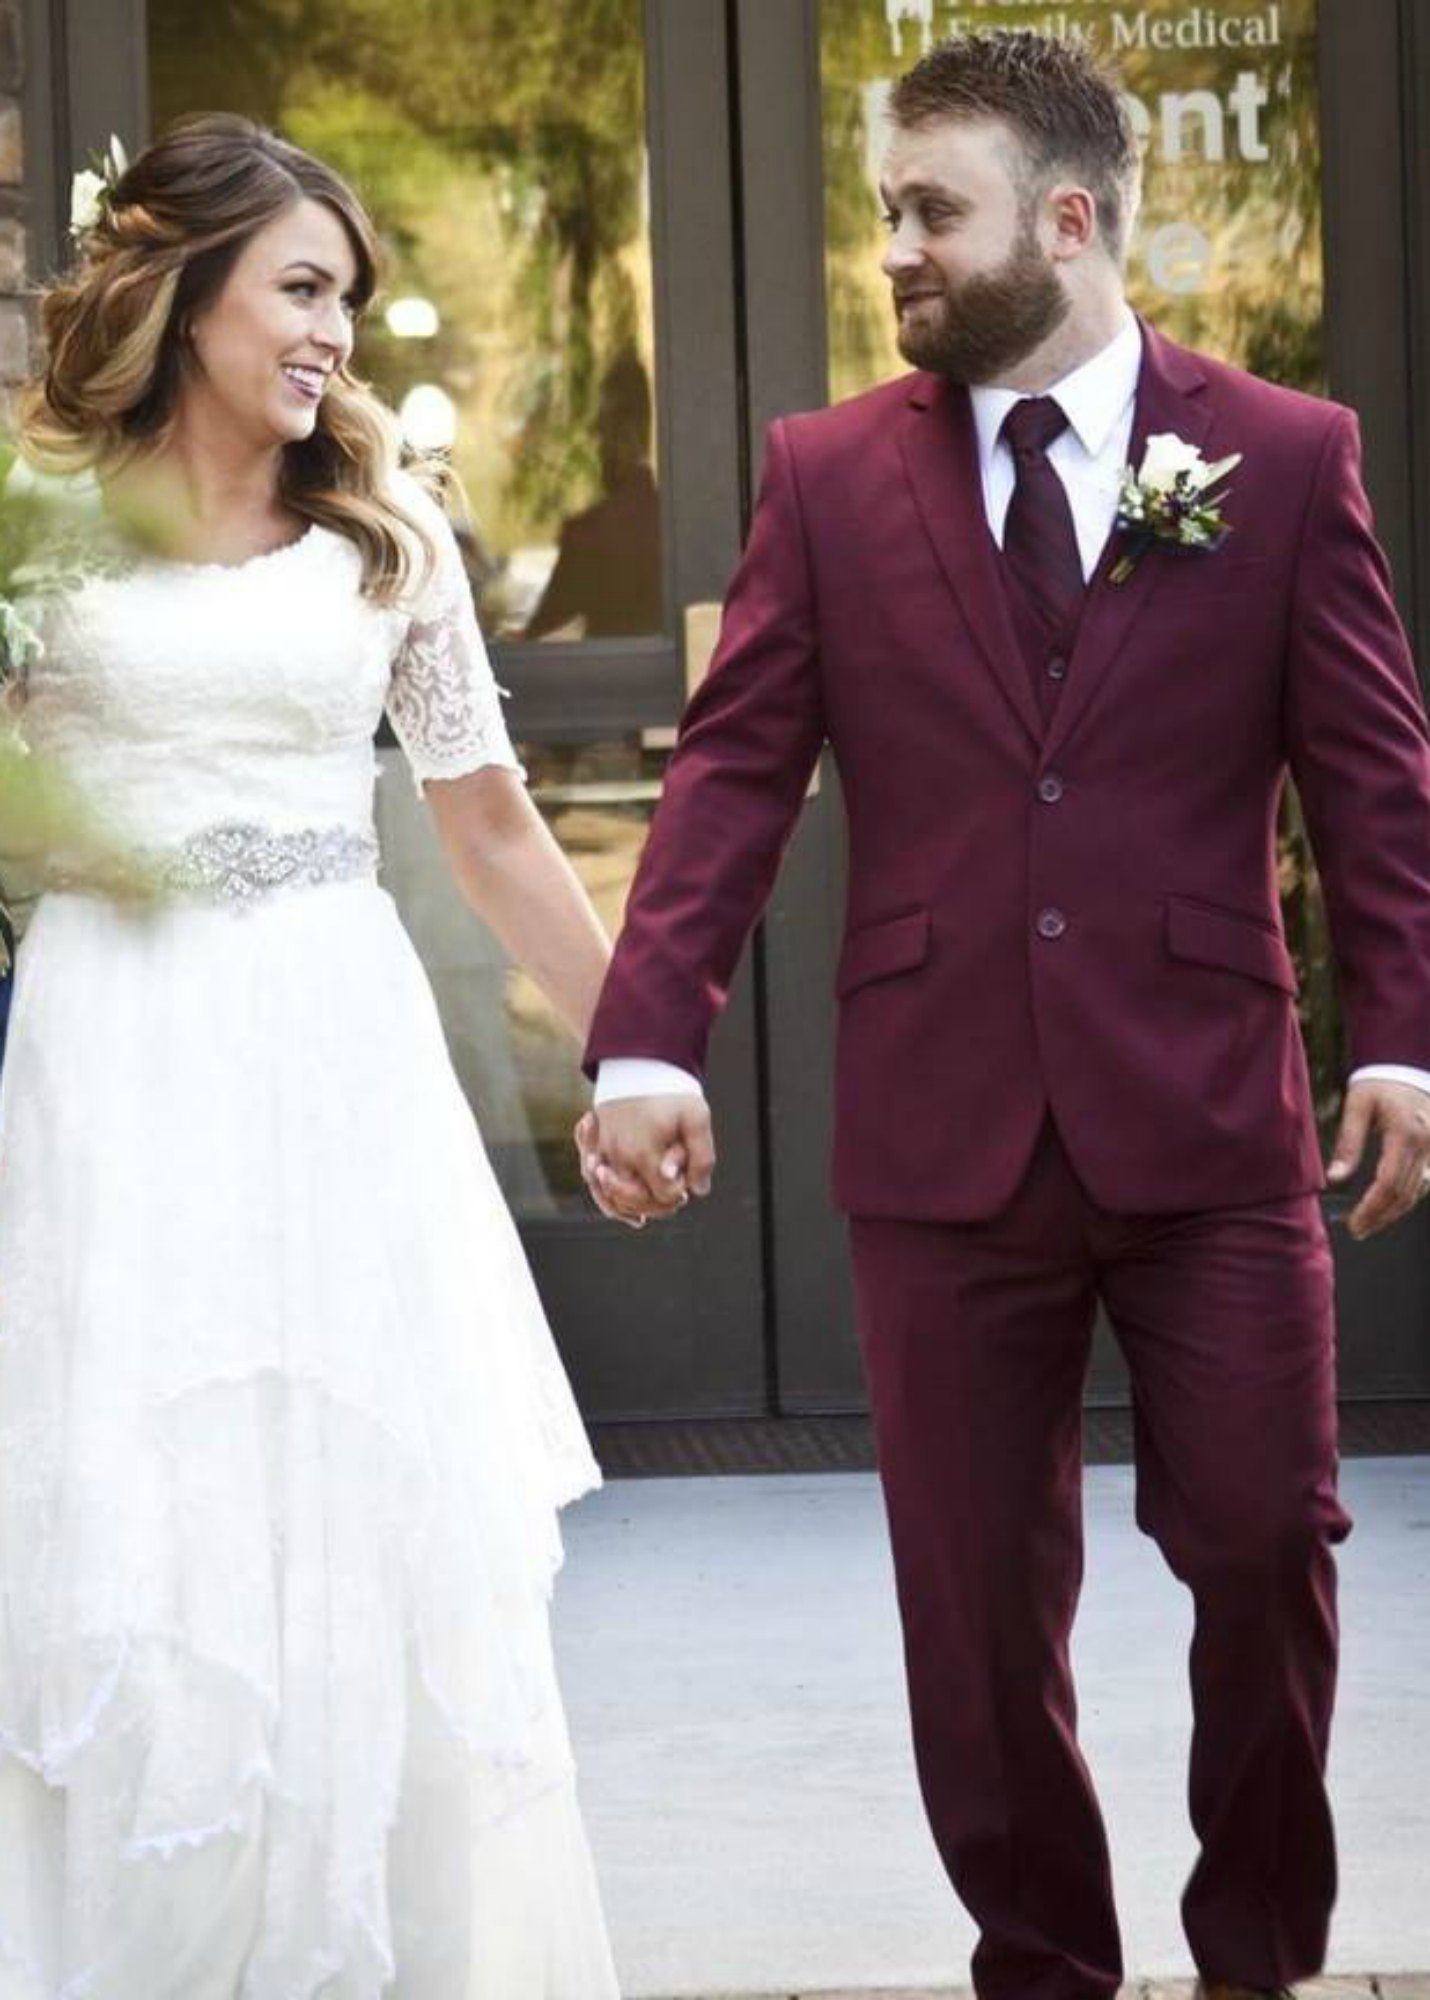 Burgundy Slim Suit for the Groom